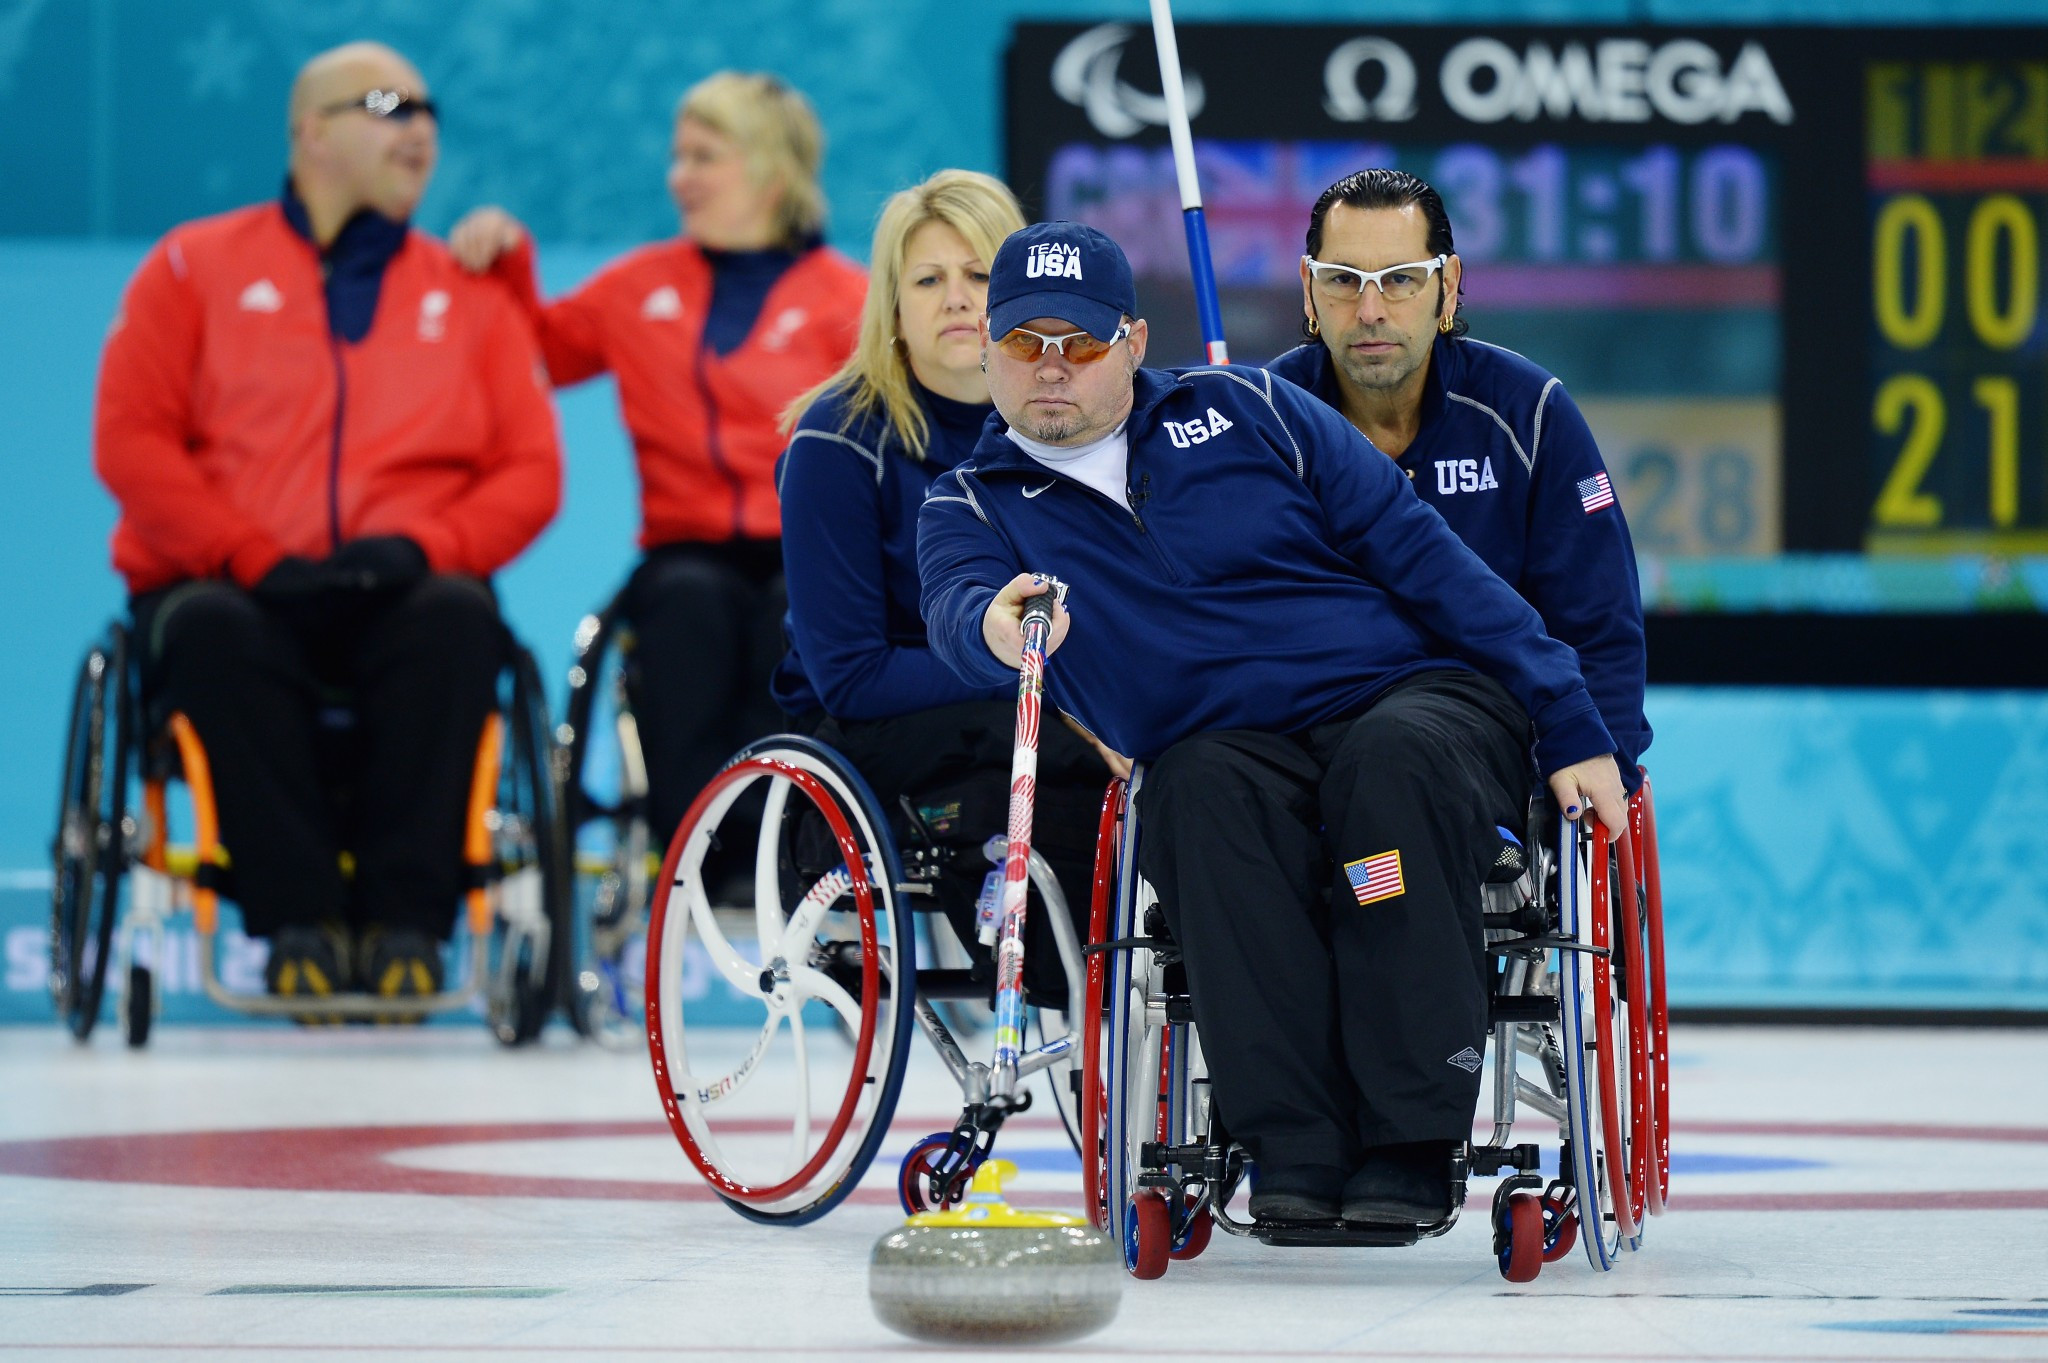 The number of teams at the World Wheelchair Curling Championship will now mirror the Paralympic Games ©Getty Images